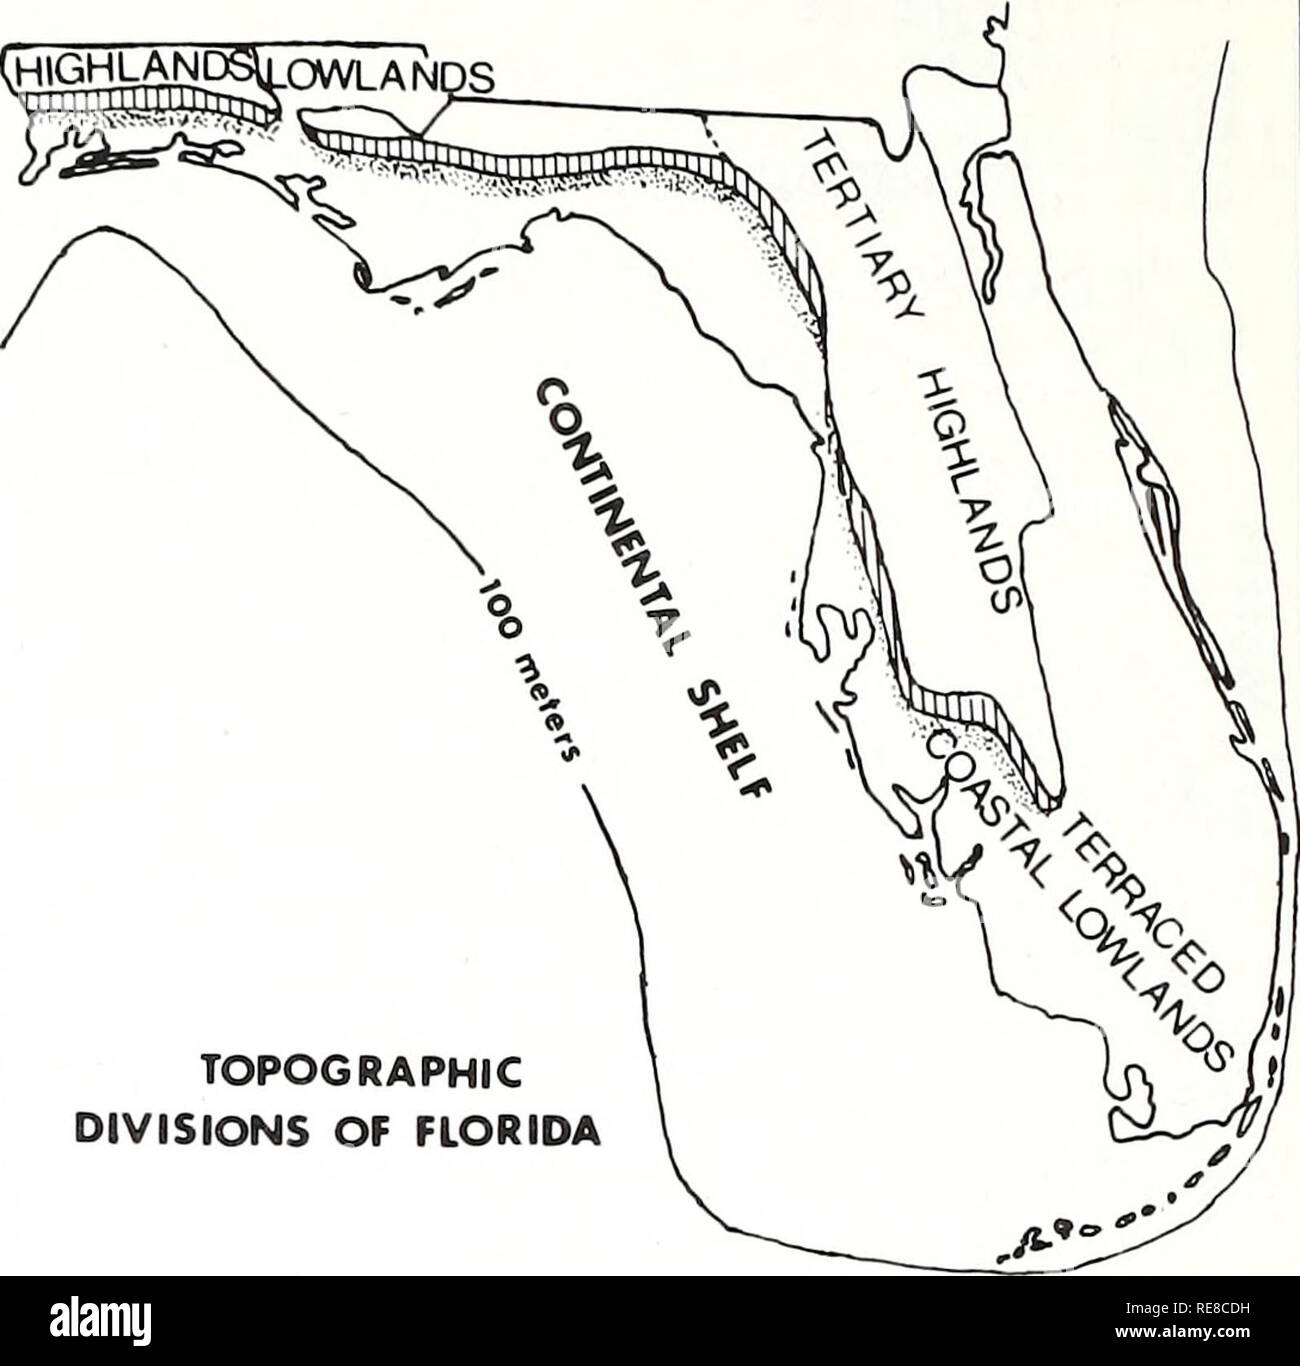 hight resolution of cooperative gulf of mexico estuarine inventory and study florida j kneeland mcnulty